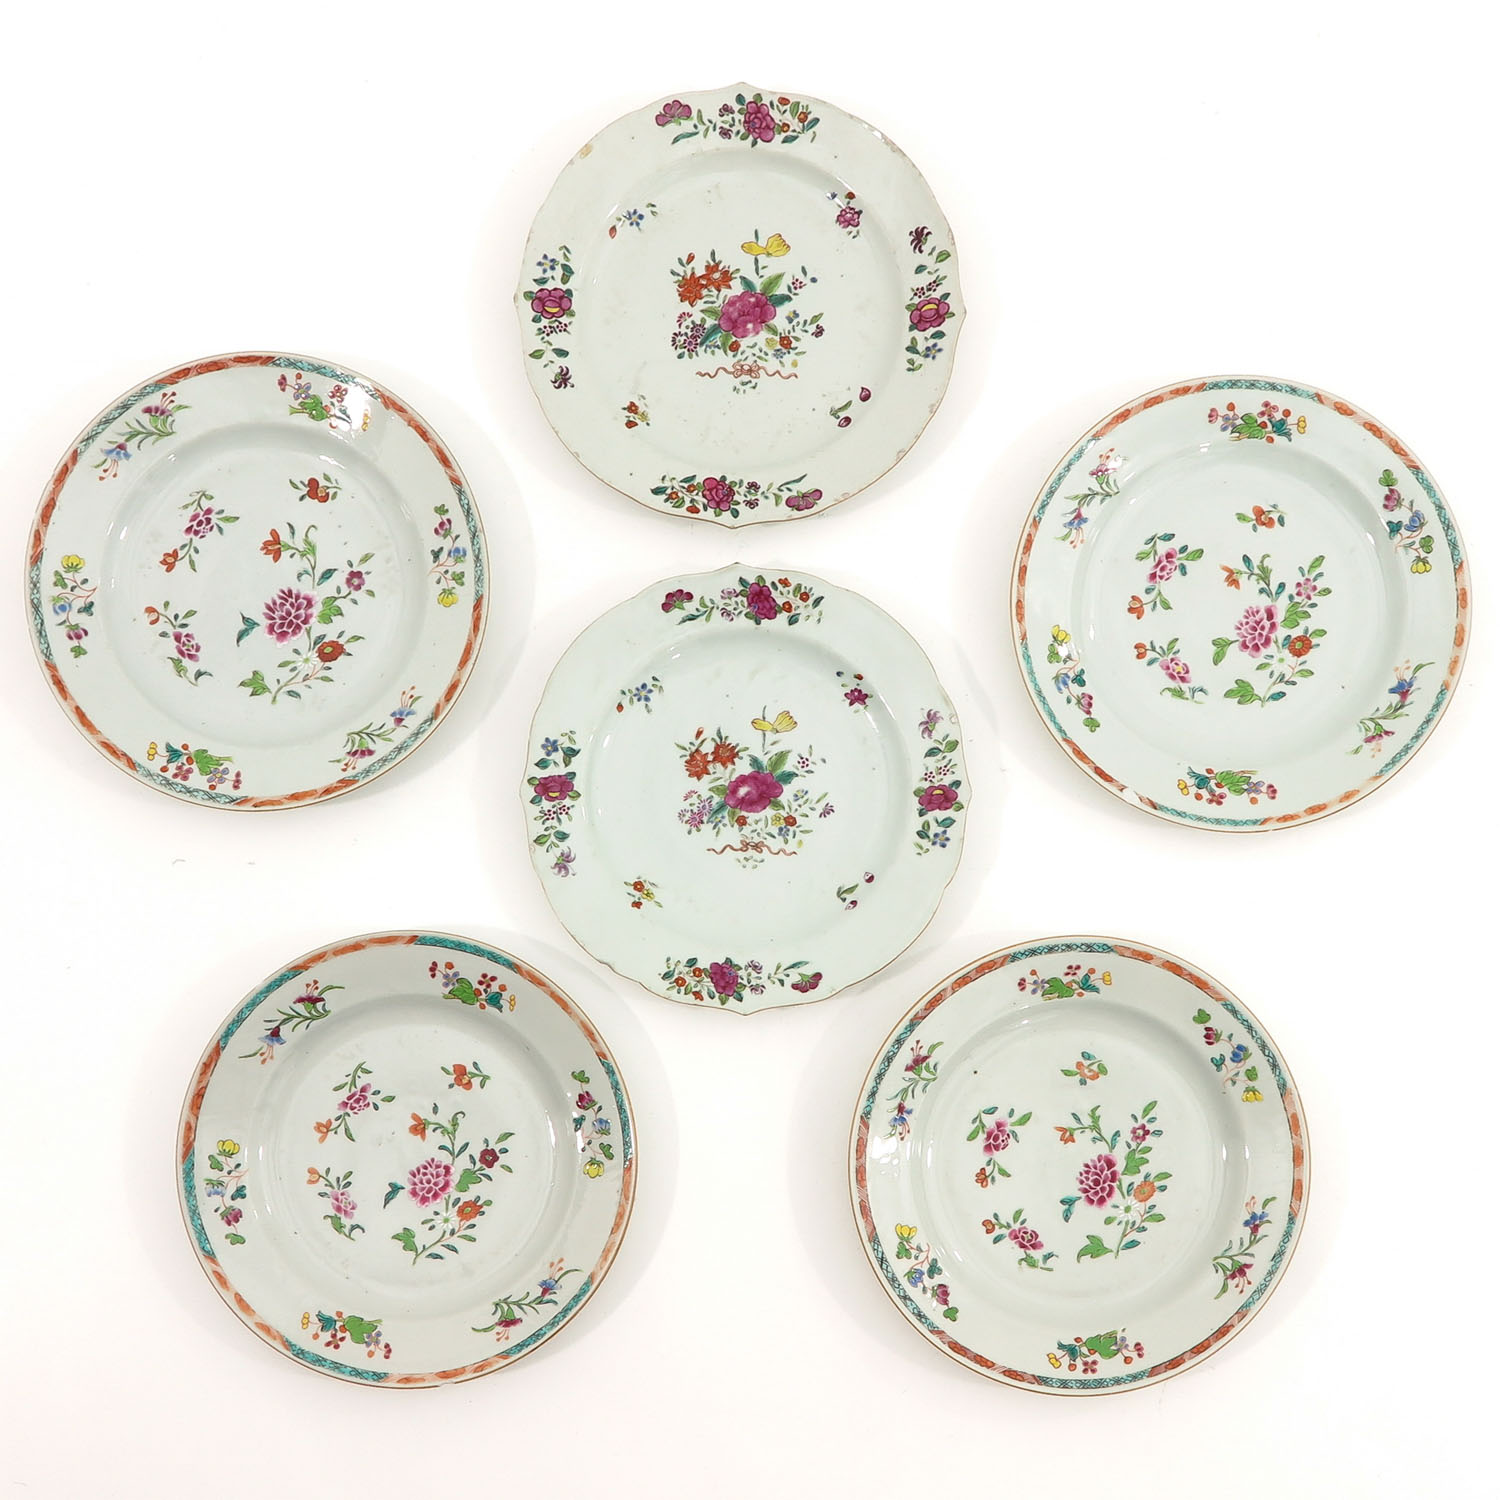 A Series of Famille Rose Plates